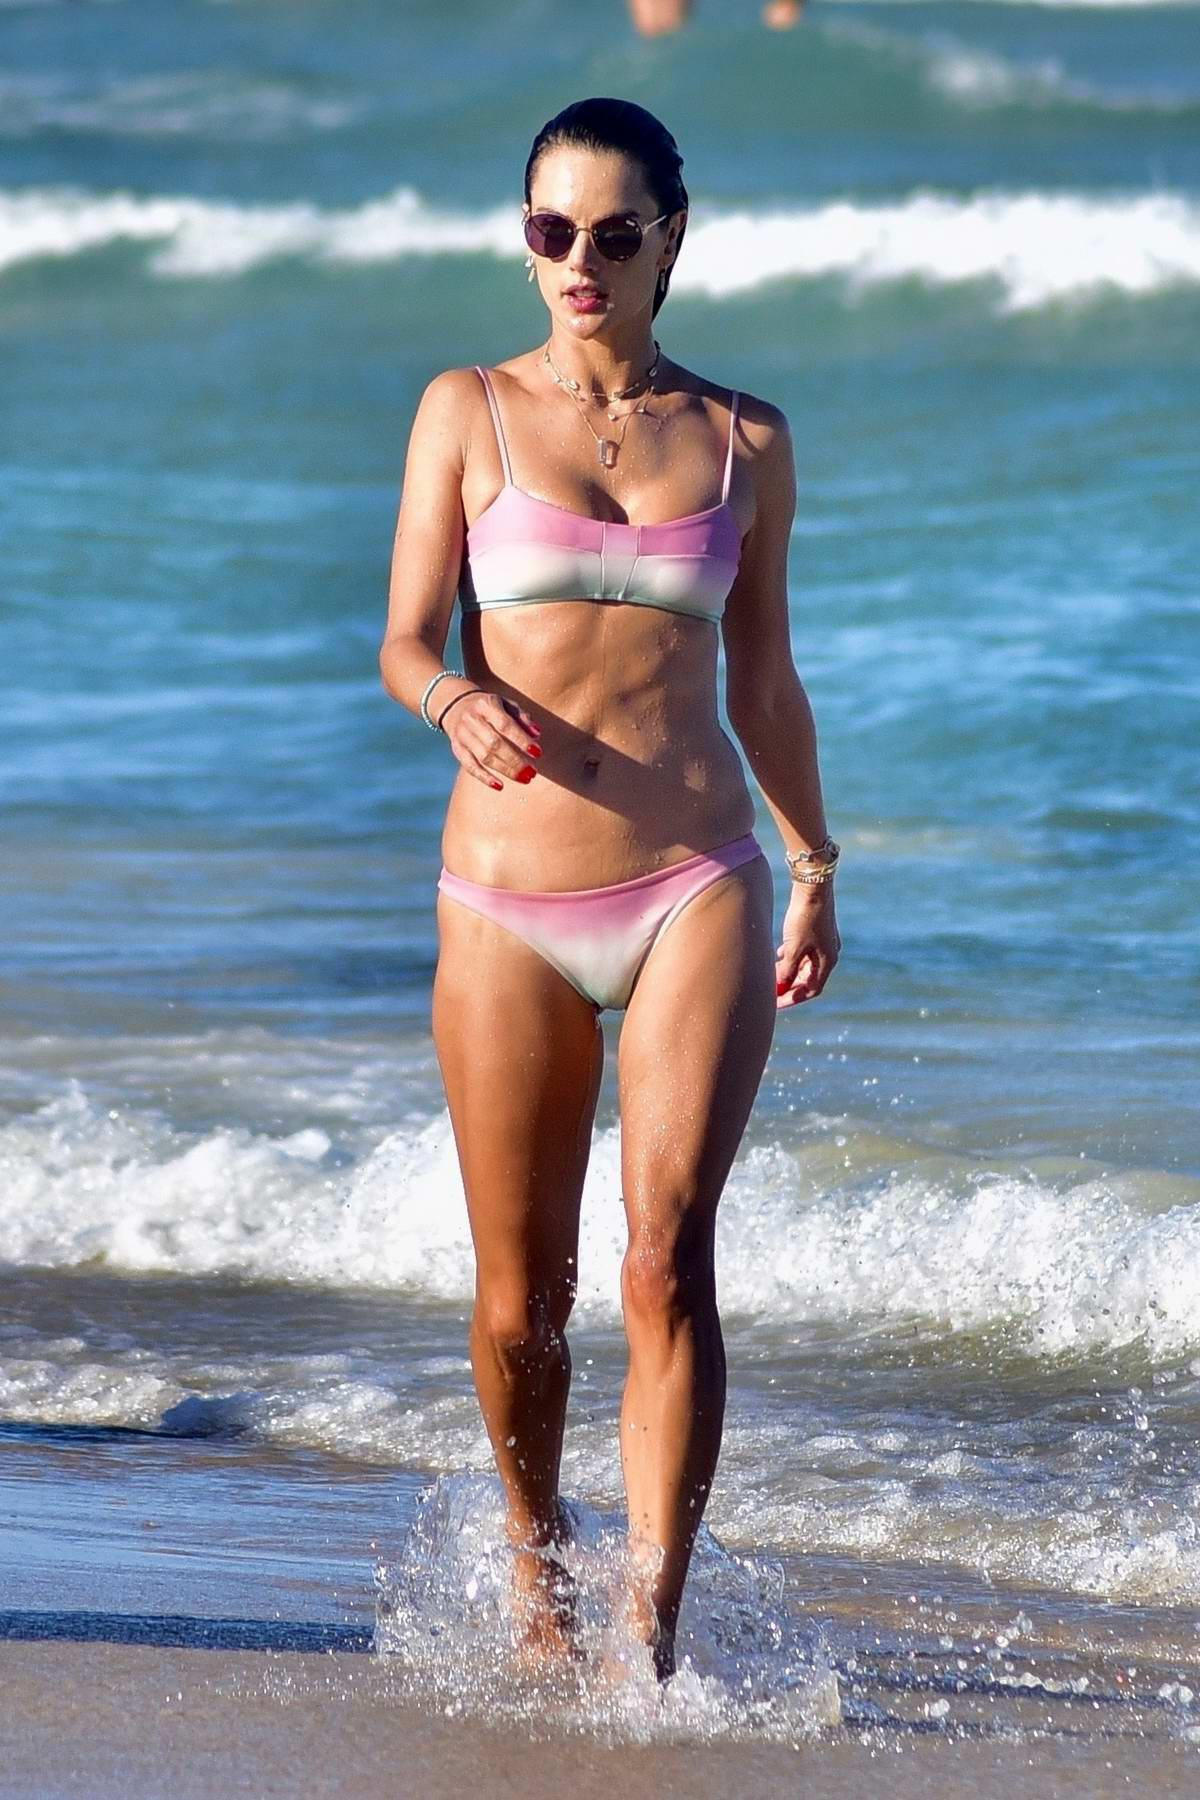 Alessandra Ambrosio looks amazing in a pink bikini as she enjoys another day at the beach in Florianópolis, Brazil